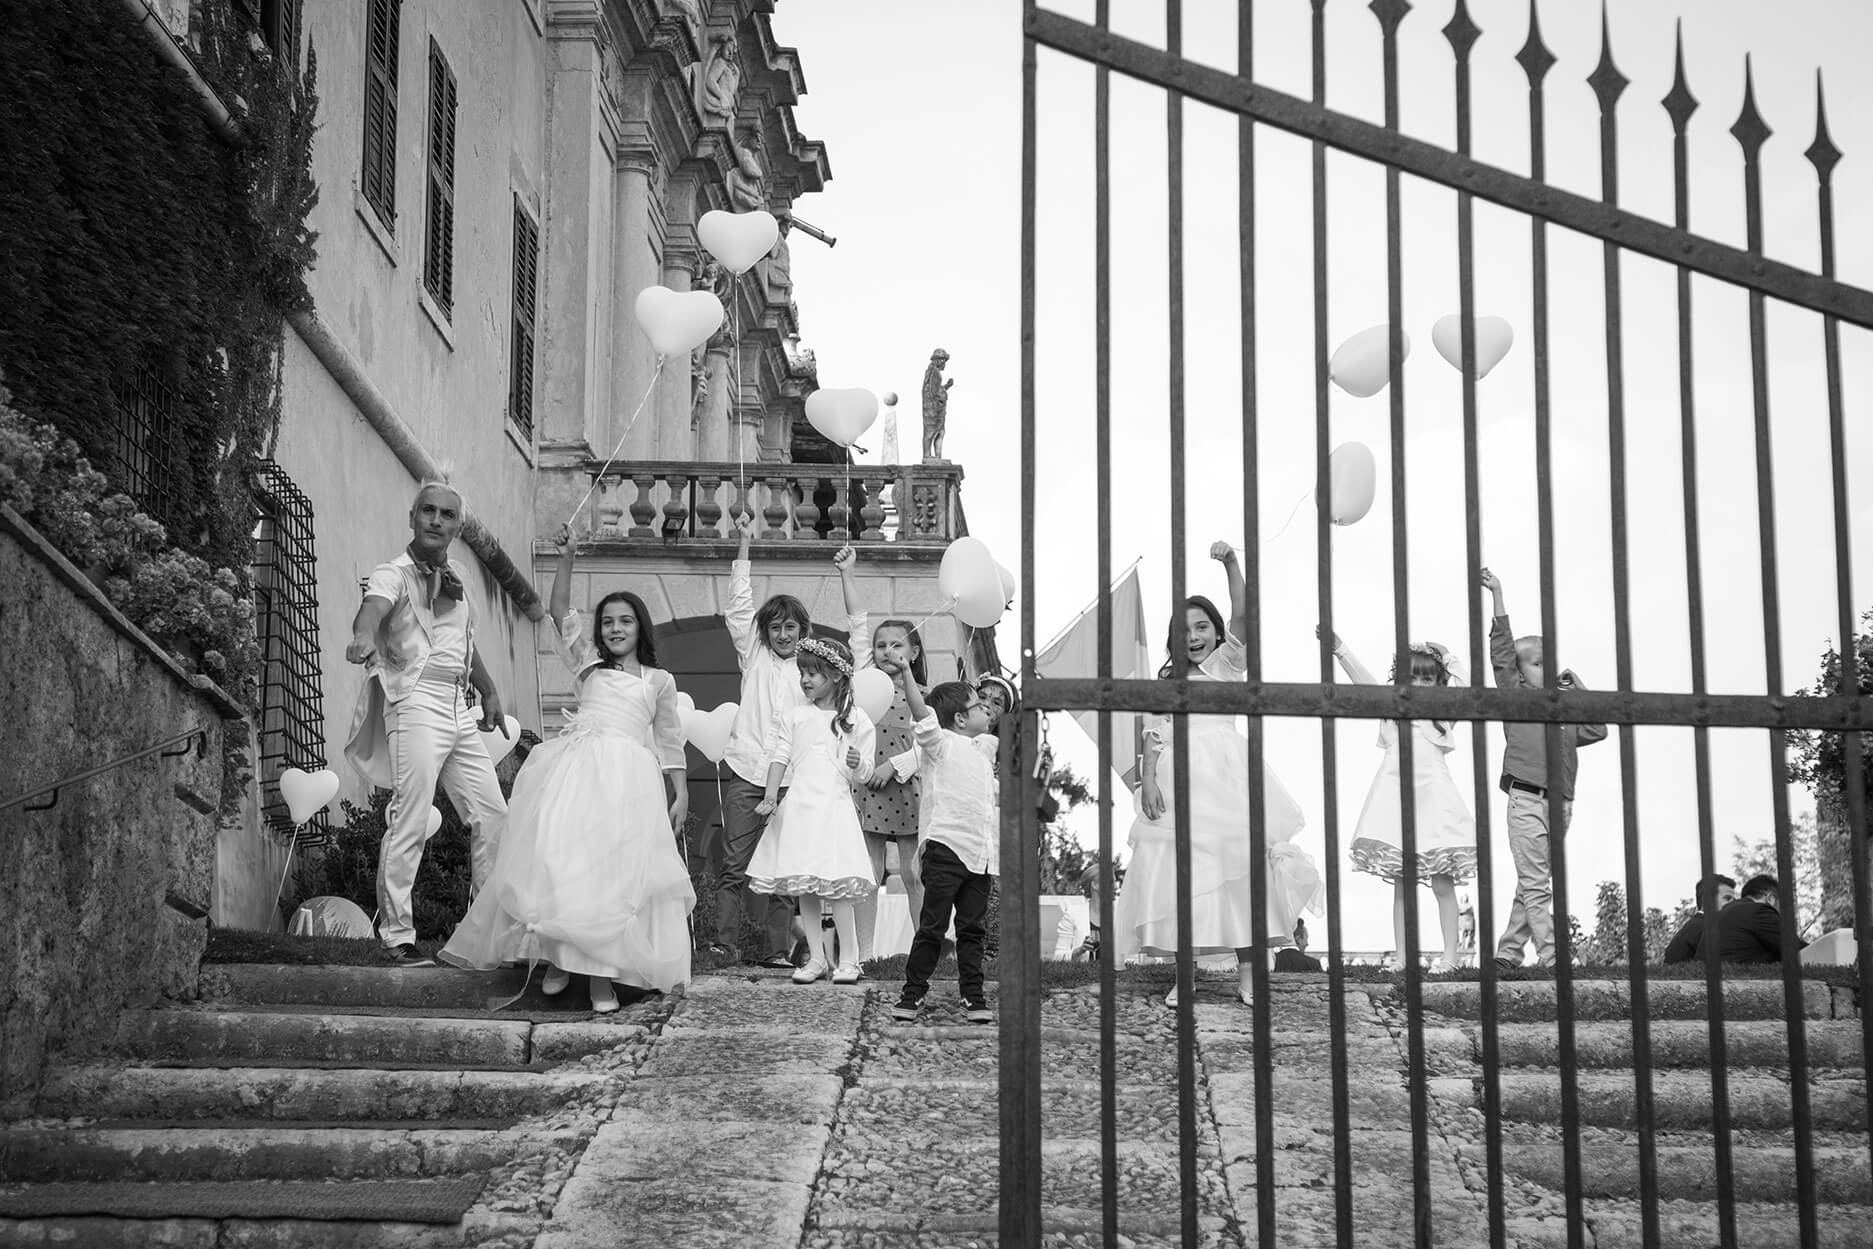 Francesca-Ferrati-WeddingIMG_0002